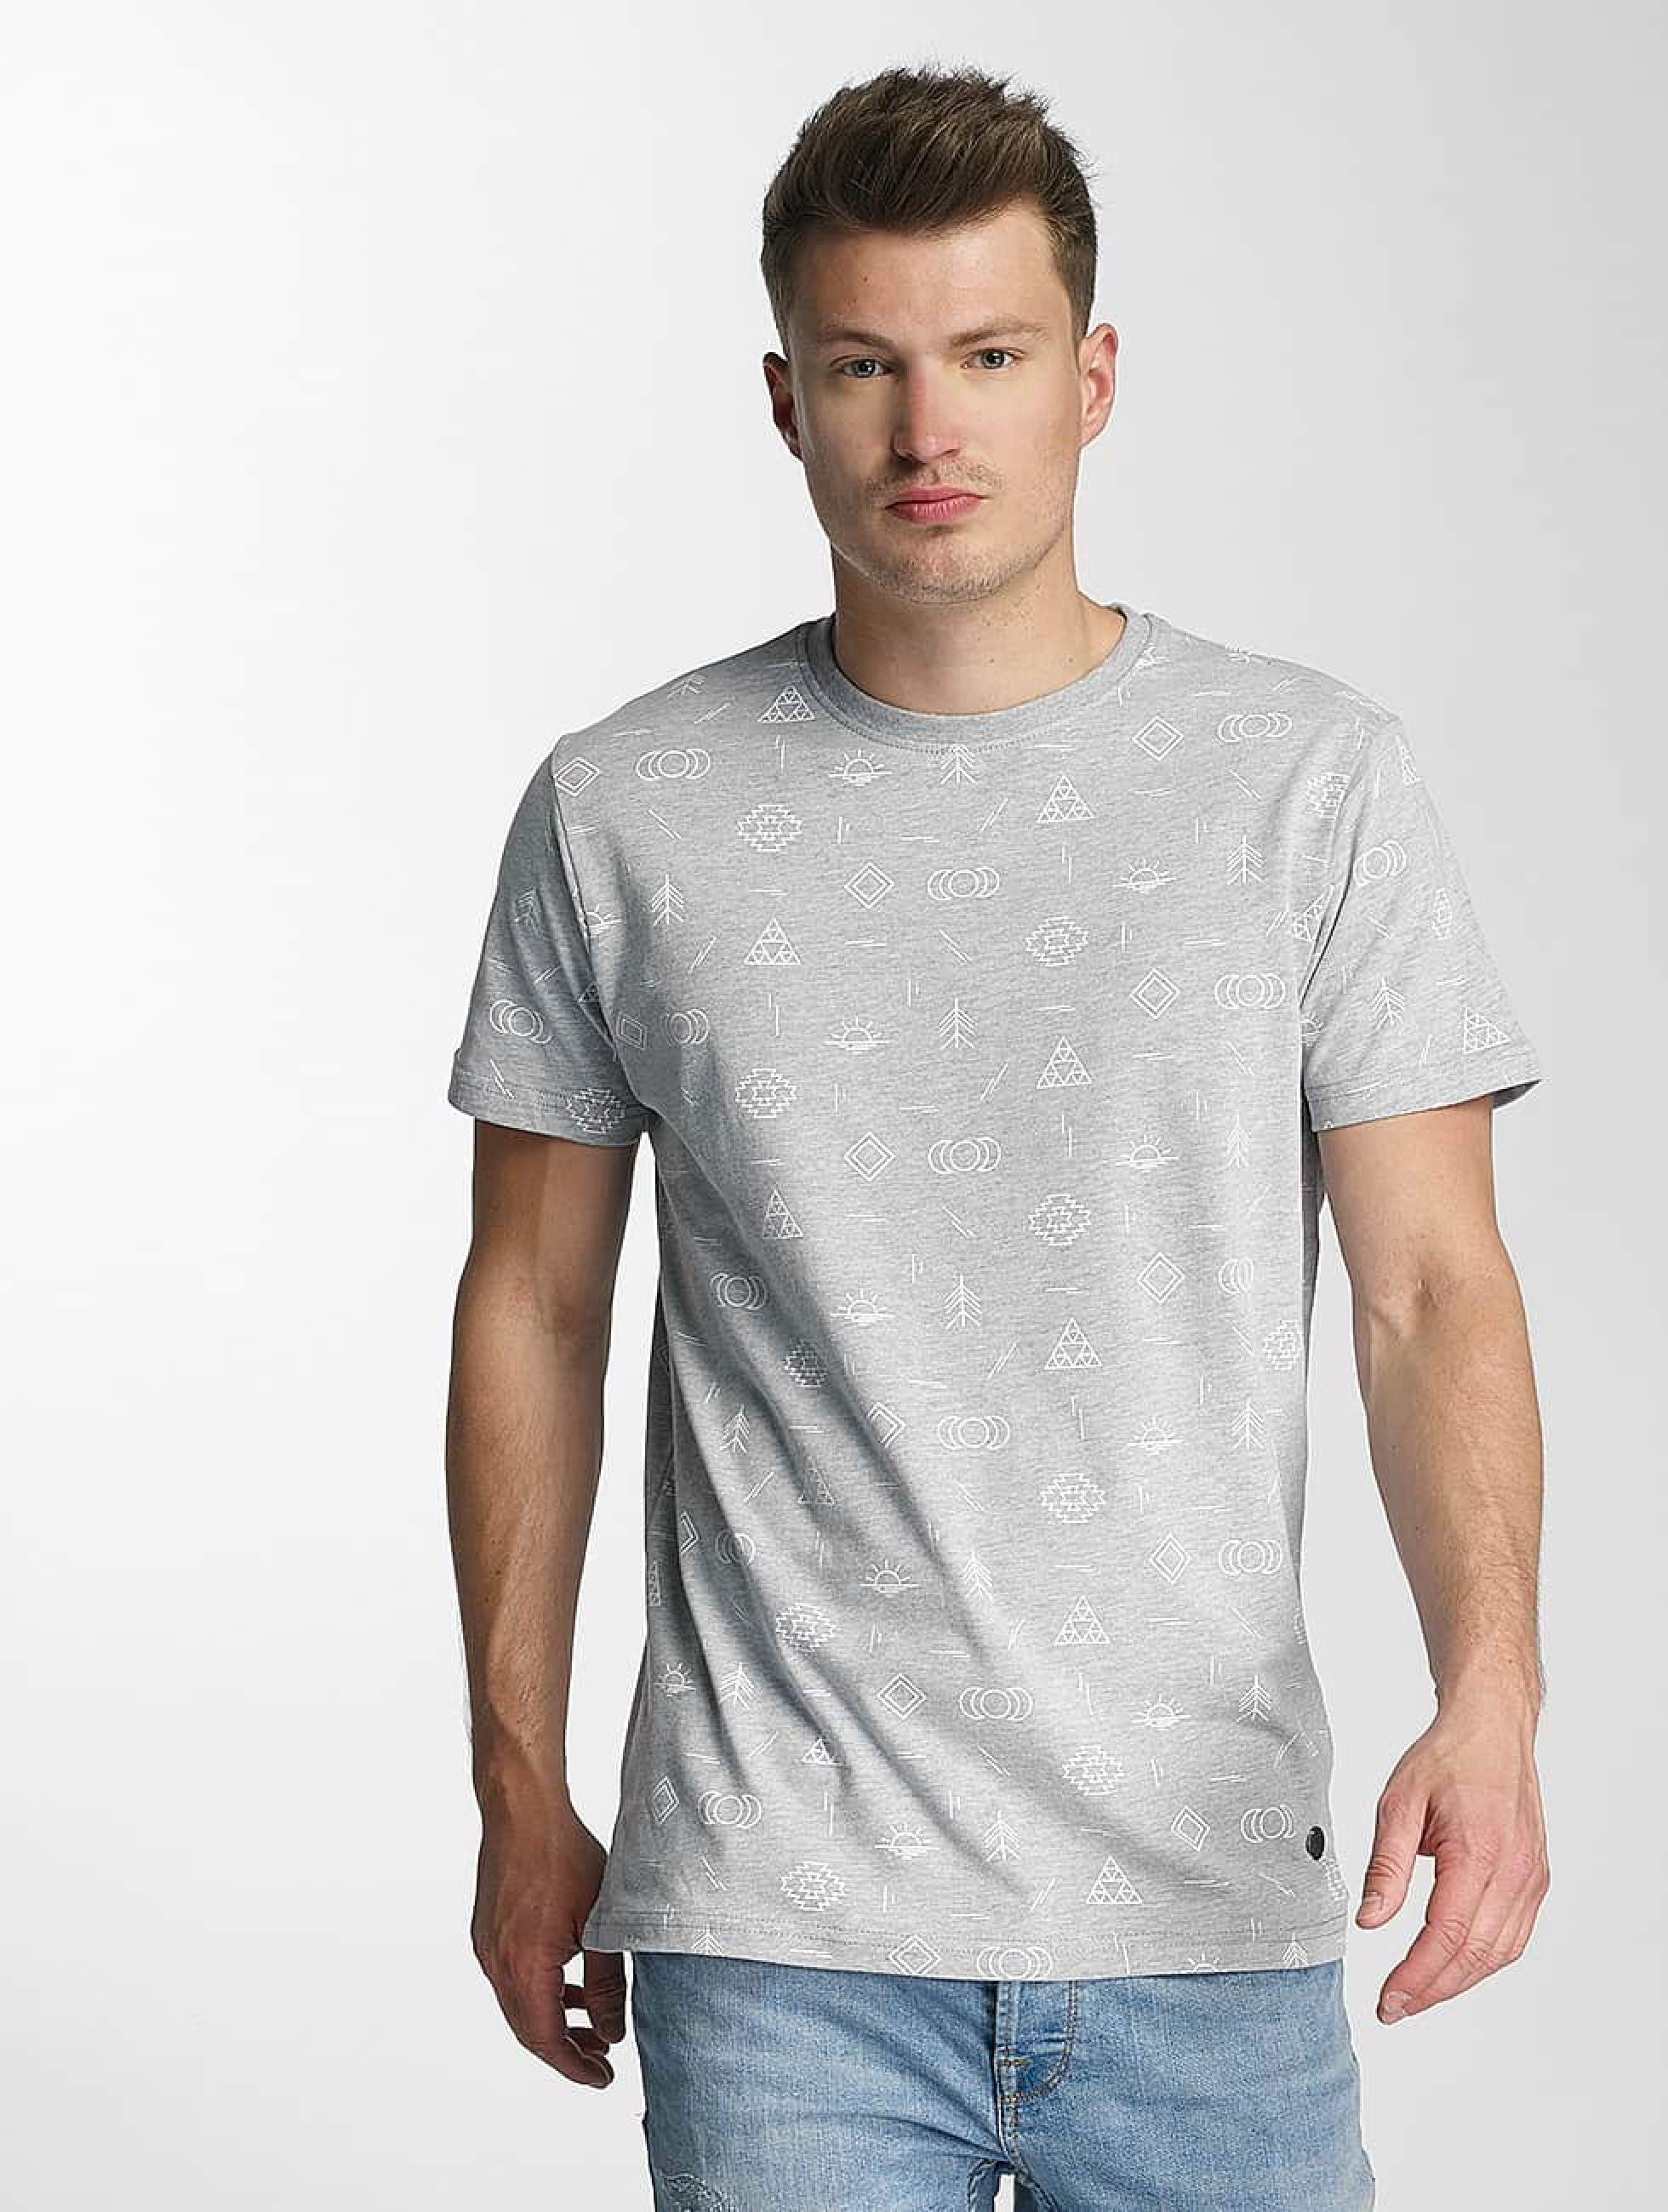 Just Rhyse / T-Shirt Alturas in grey L